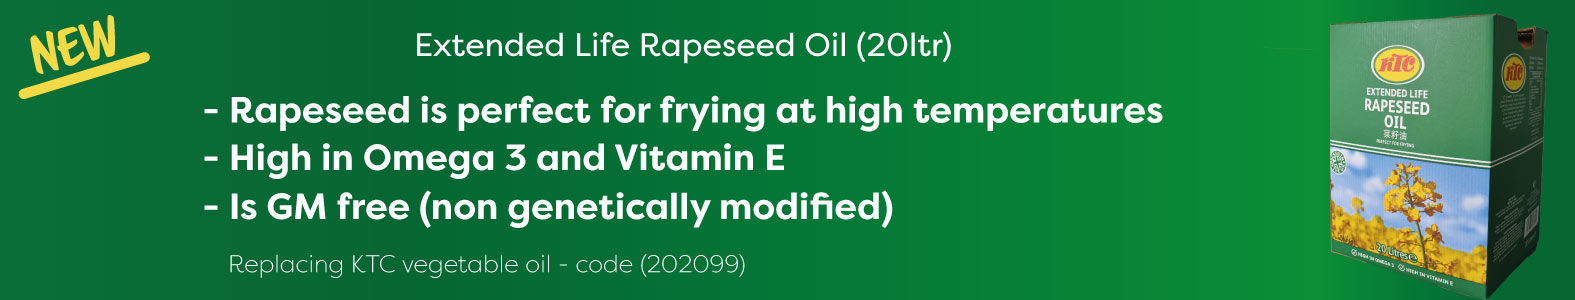 Extended Life Rapeseed Oil